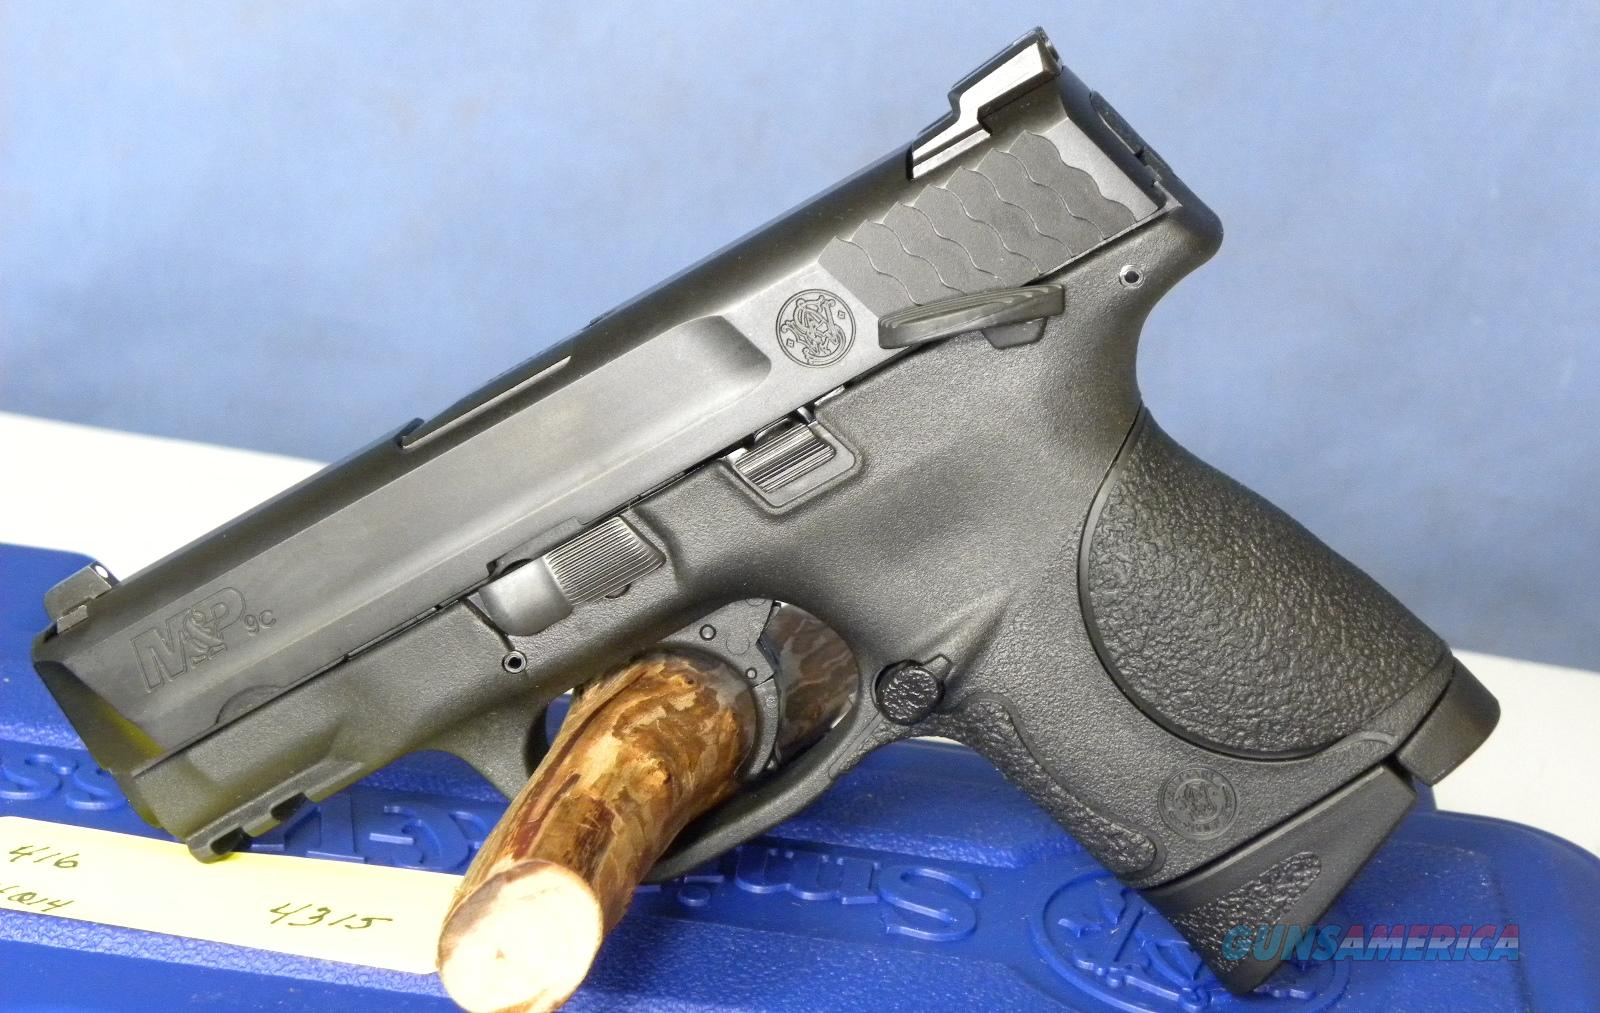 S&W M&P 9mm Compact 206304  Guns > Pistols > Smith & Wesson Pistols - Autos > Polymer Frame